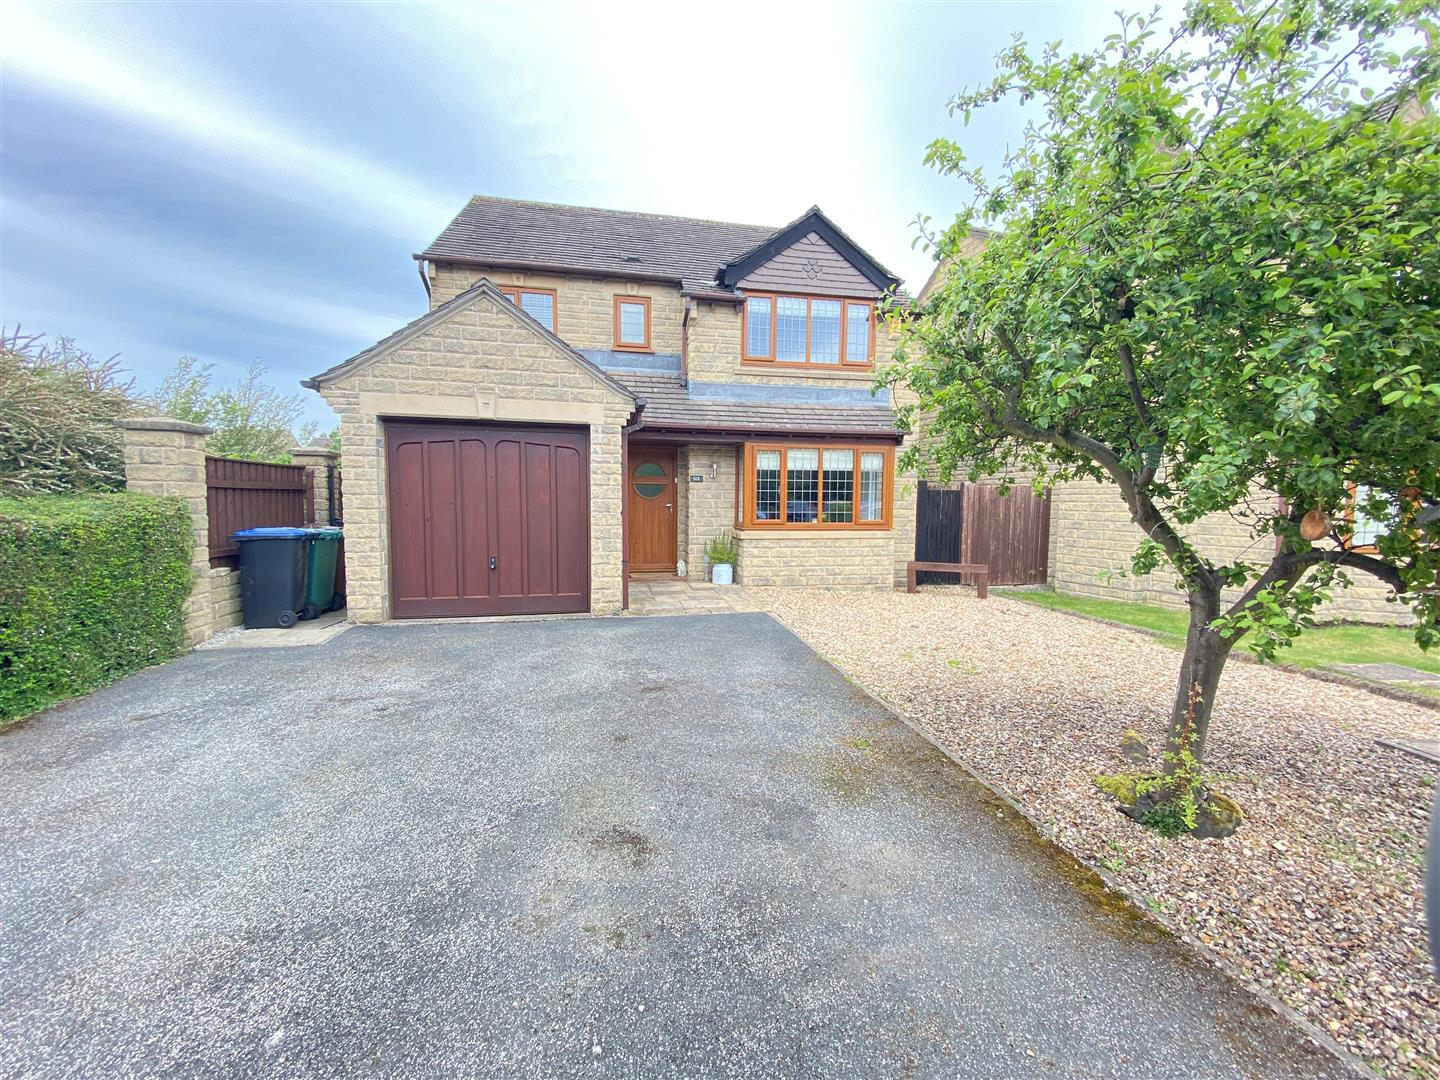 Greystone Close, Burley In Wharfedale, LS29 7RS